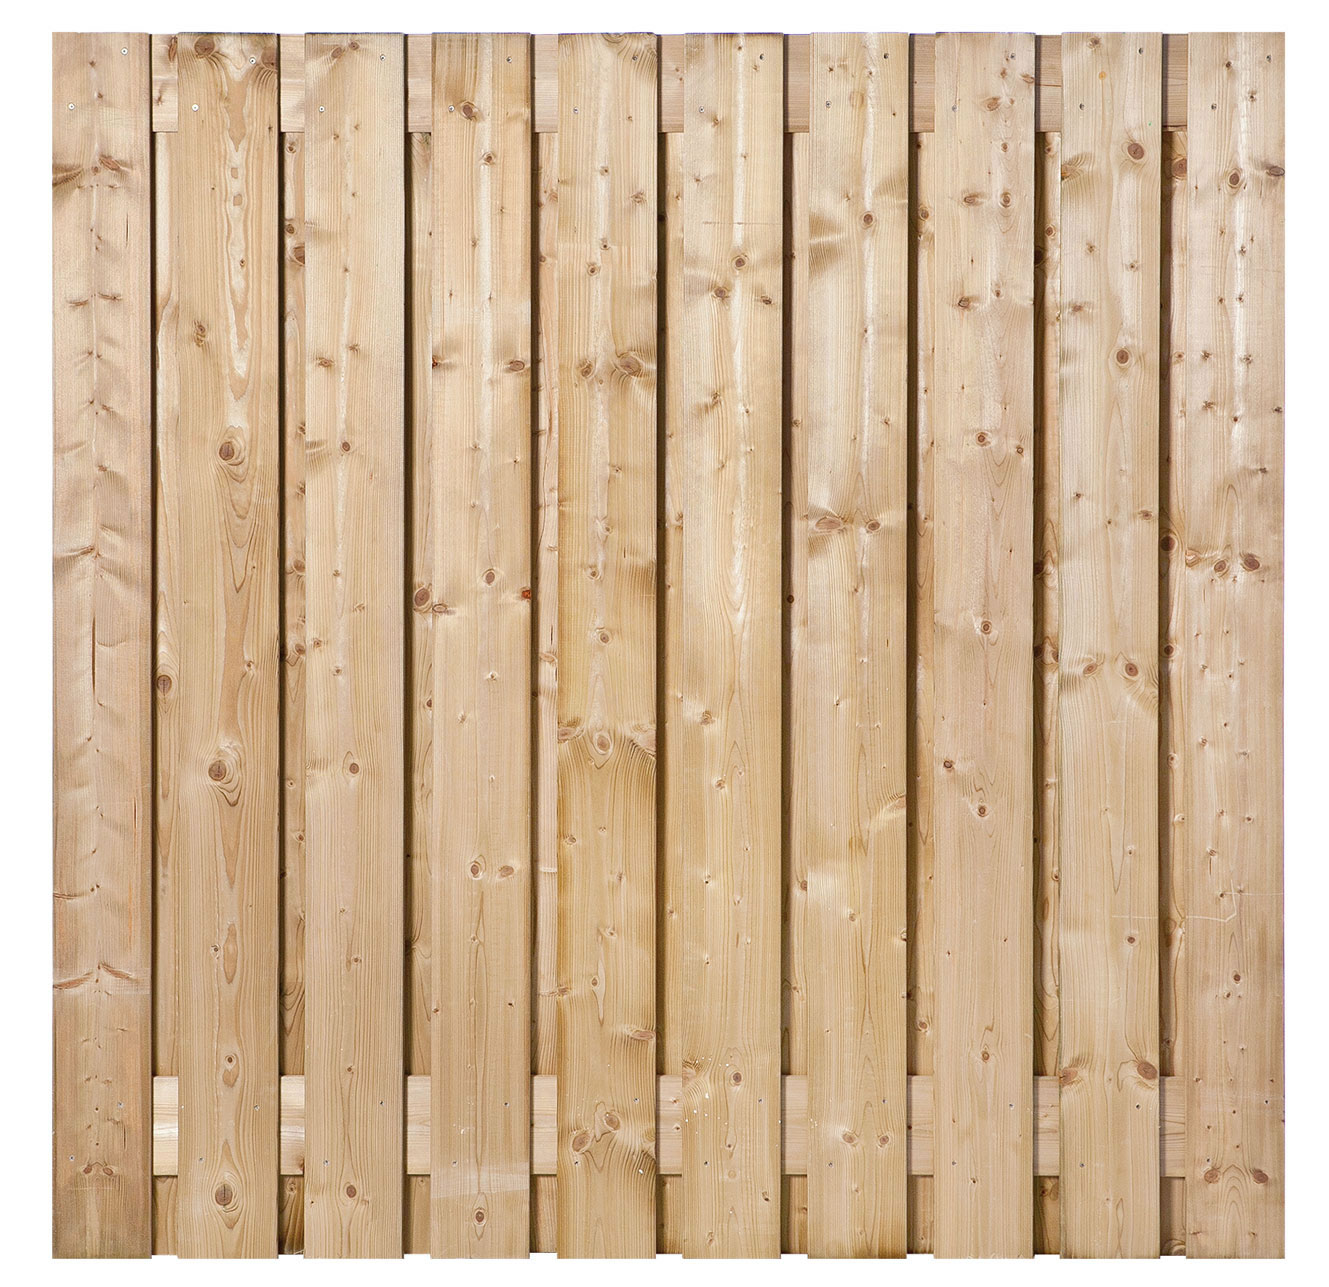 Azewijn Fence panel made from Spruce